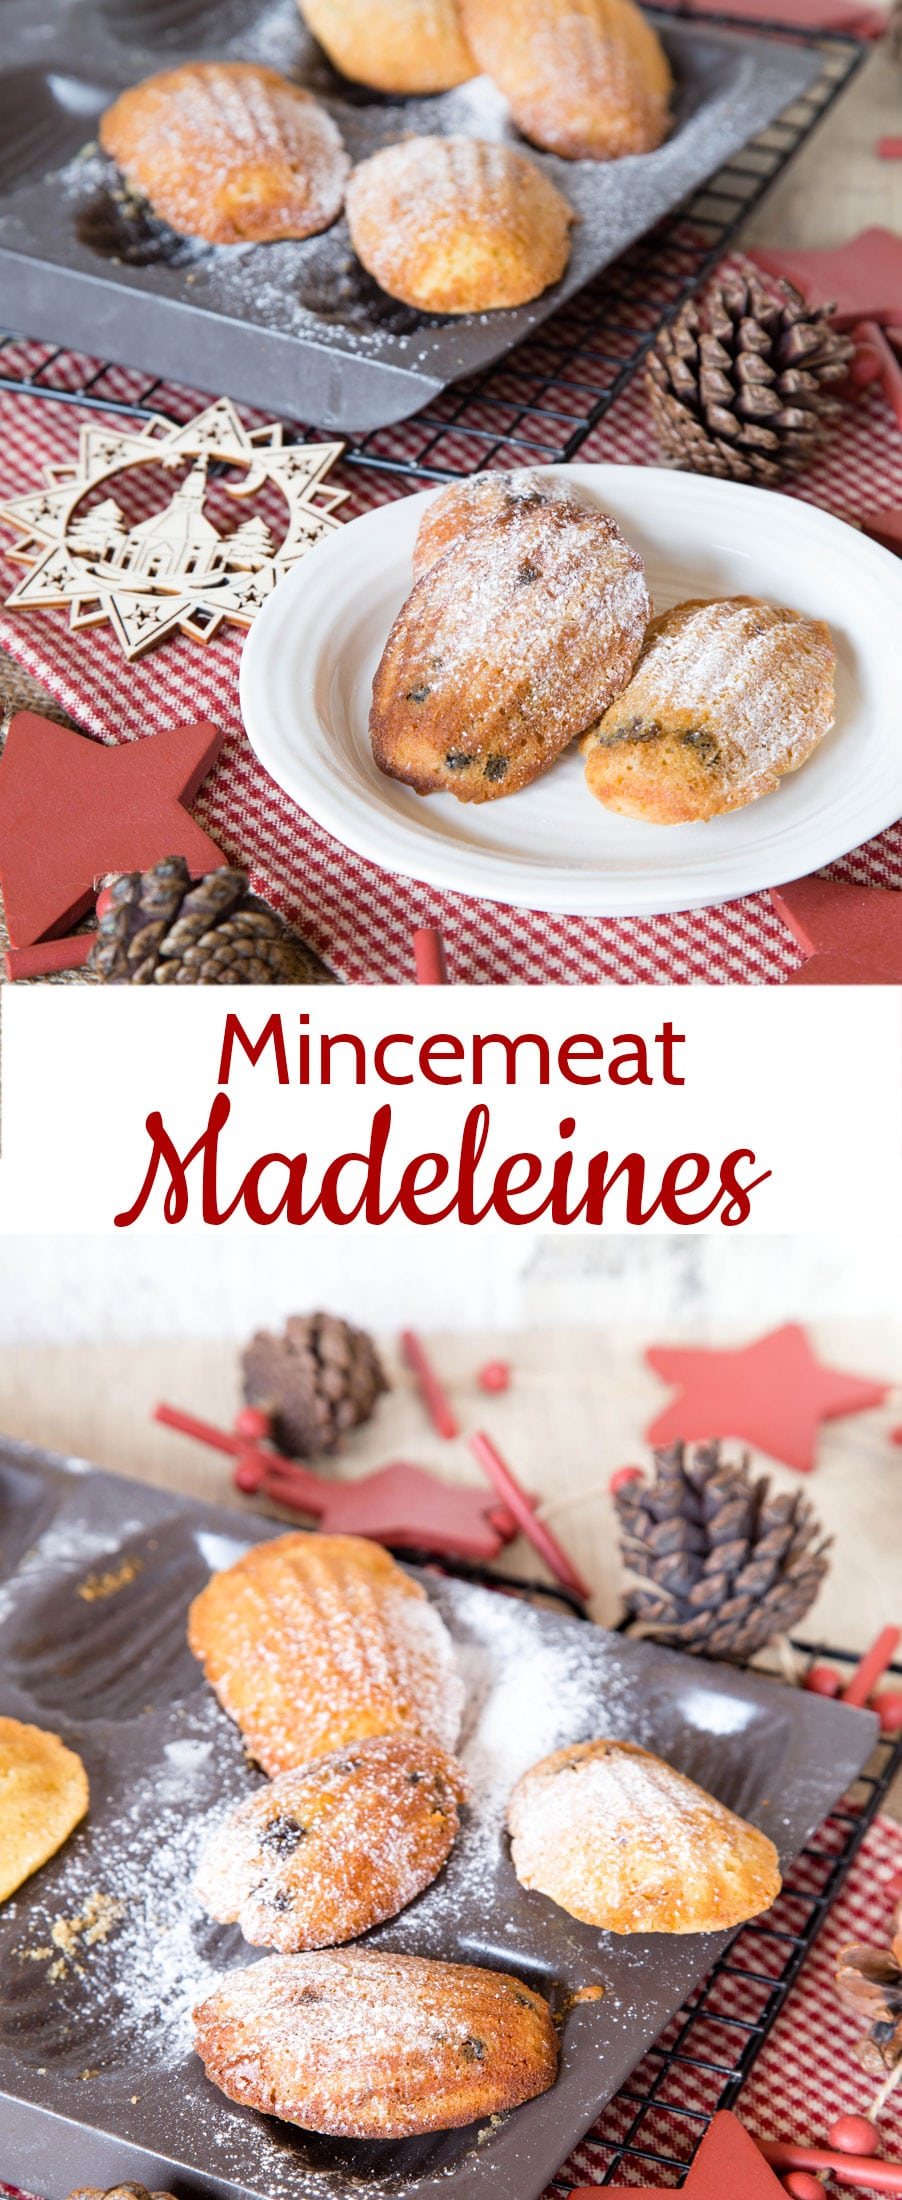 Mincemeat Madeleines are a sweet twist on the traditional Madeleine. Just start with a traditional Madeleine batter and add your favourite mincemeat!